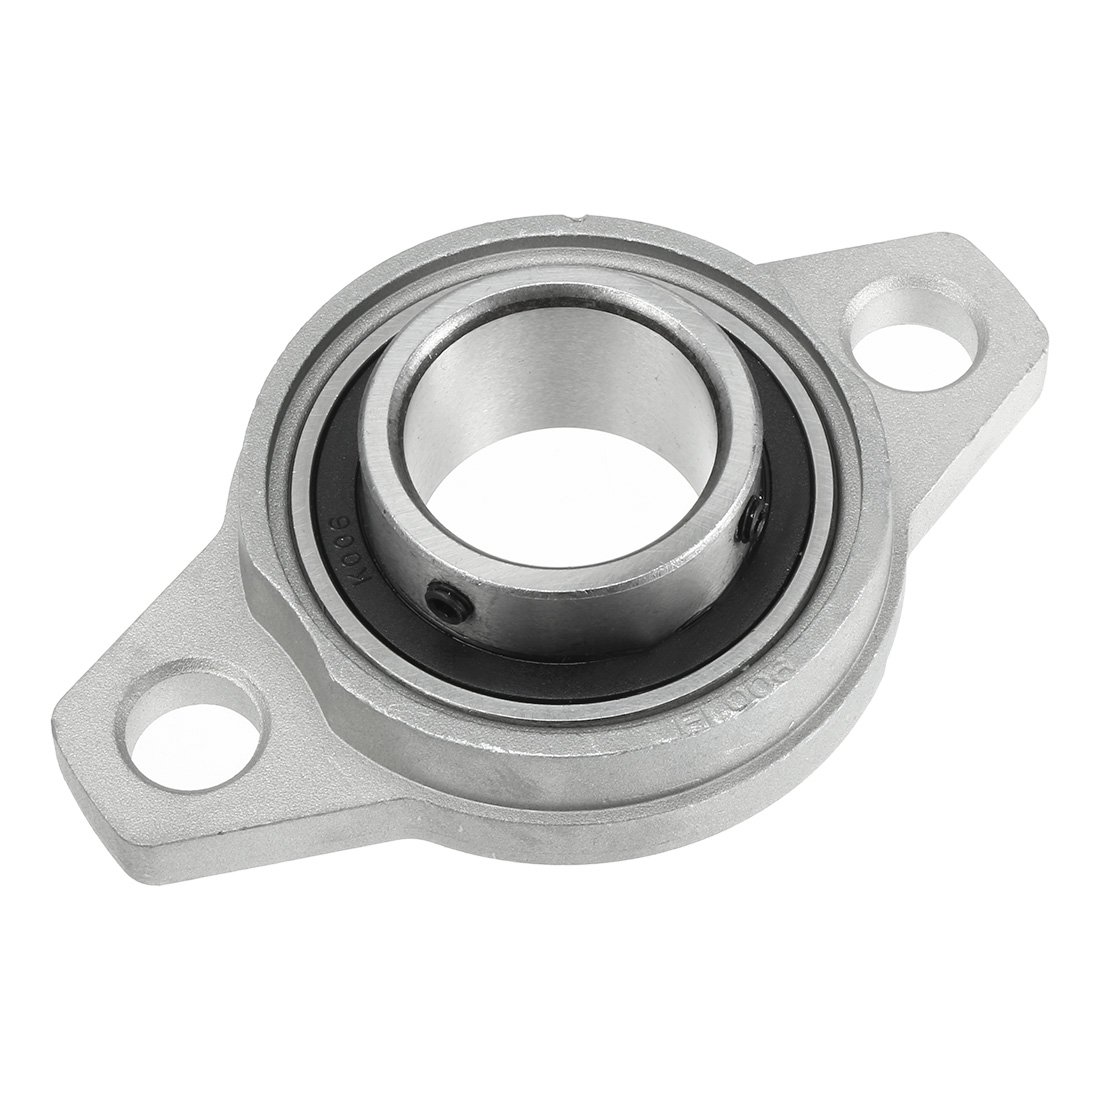 uxcell KFL006 30mm Zinc Alloy Self Aligning Pillow Block Flange Bearing